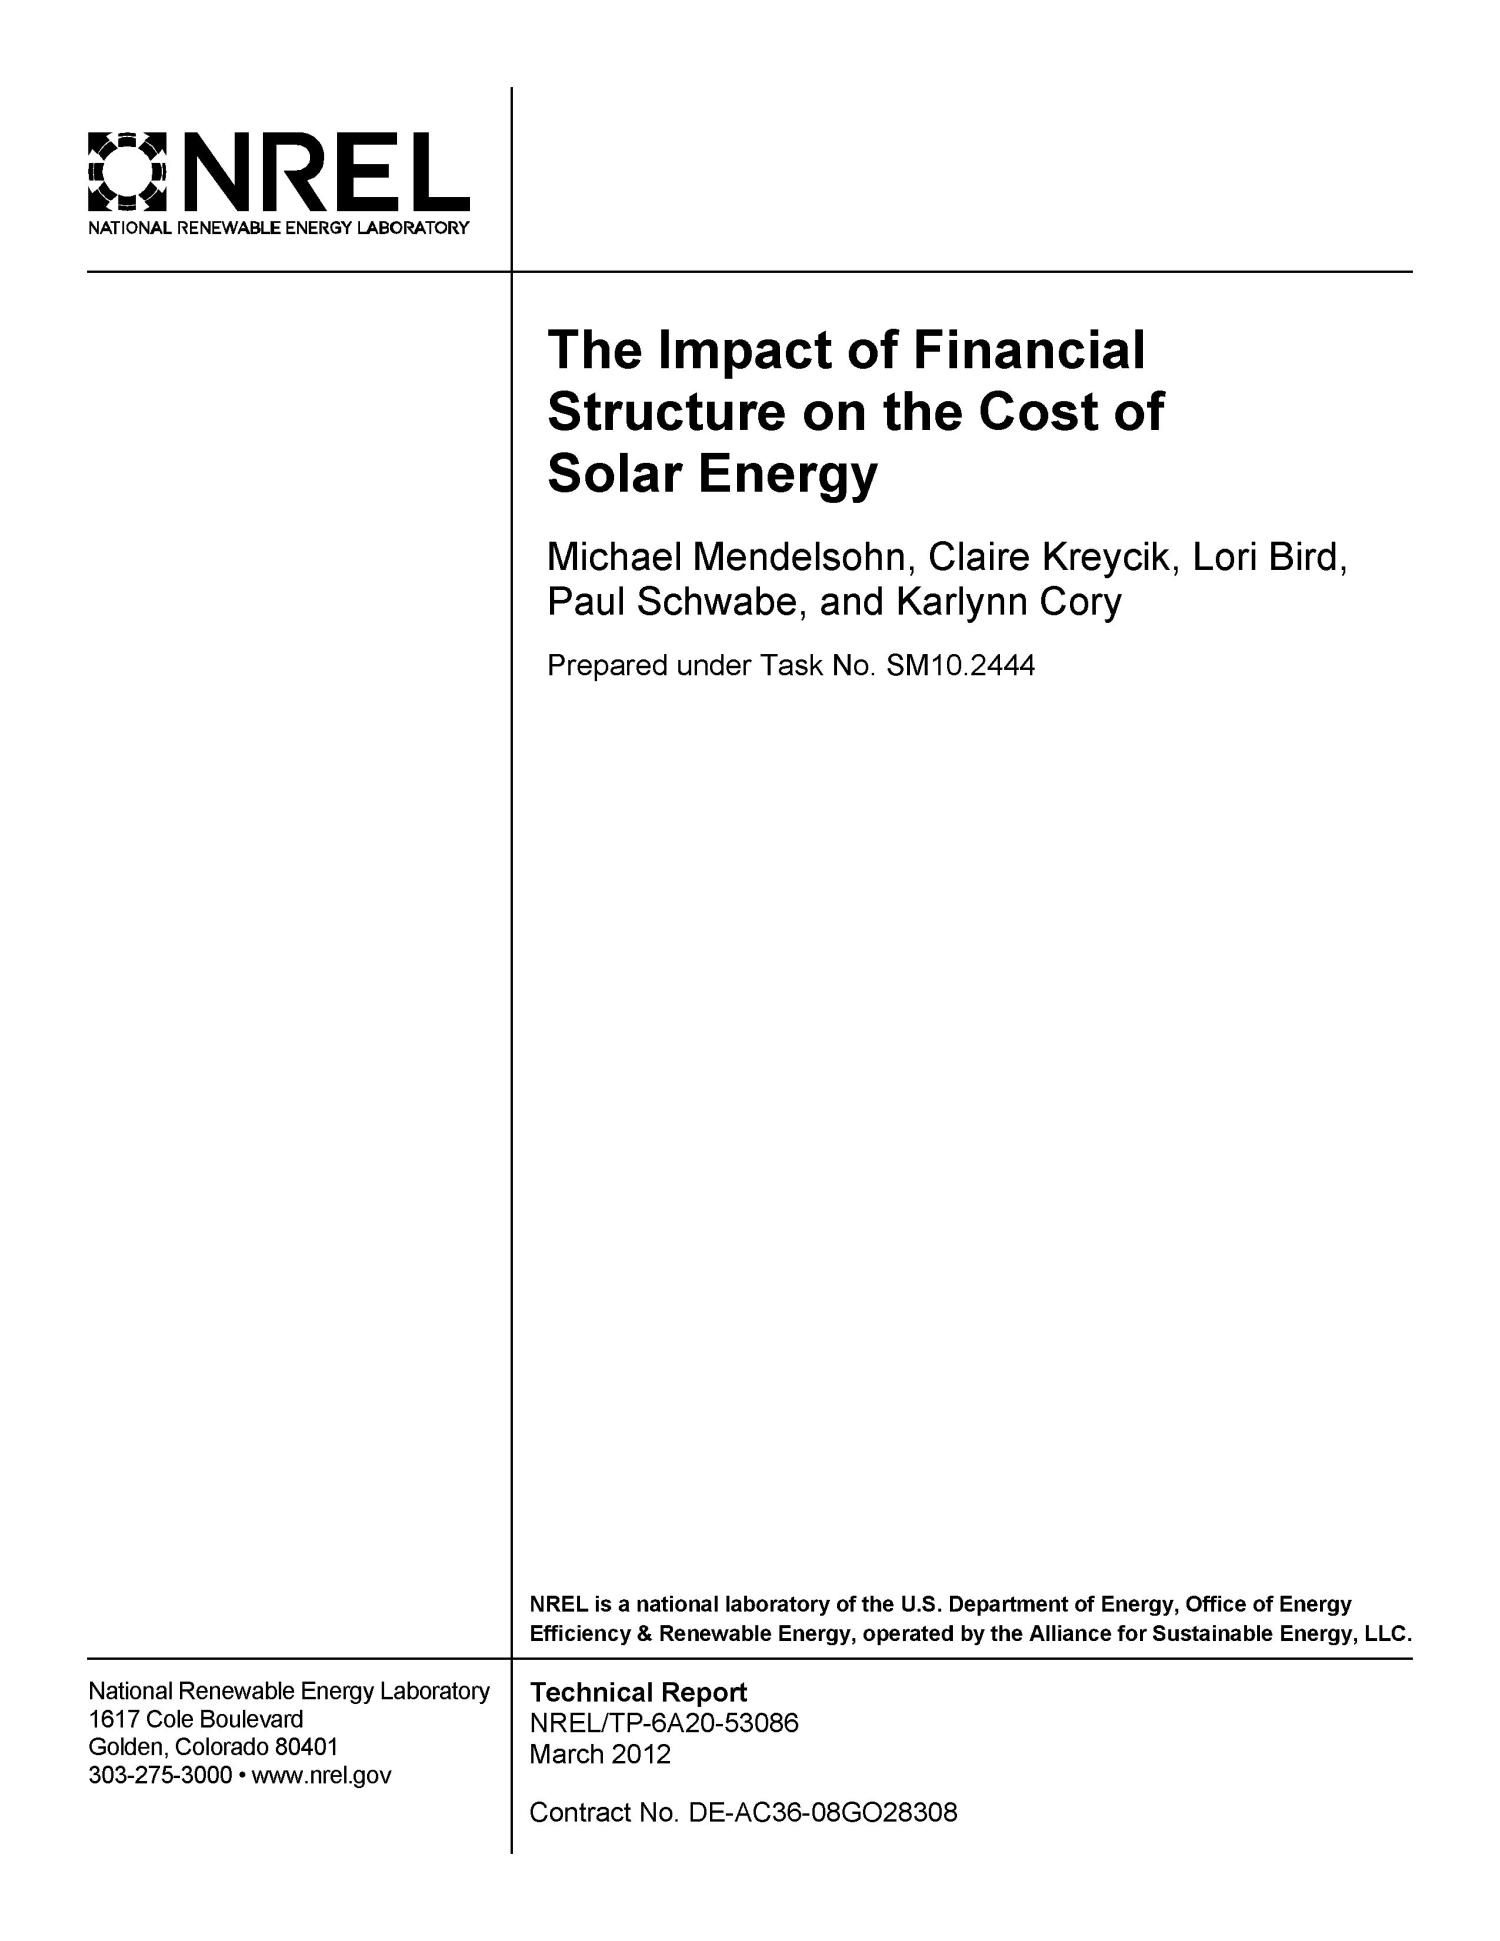 Impact of Financial Structure on the Cost of Solar Energy                                                                                                      [Sequence #]: 2 of 40